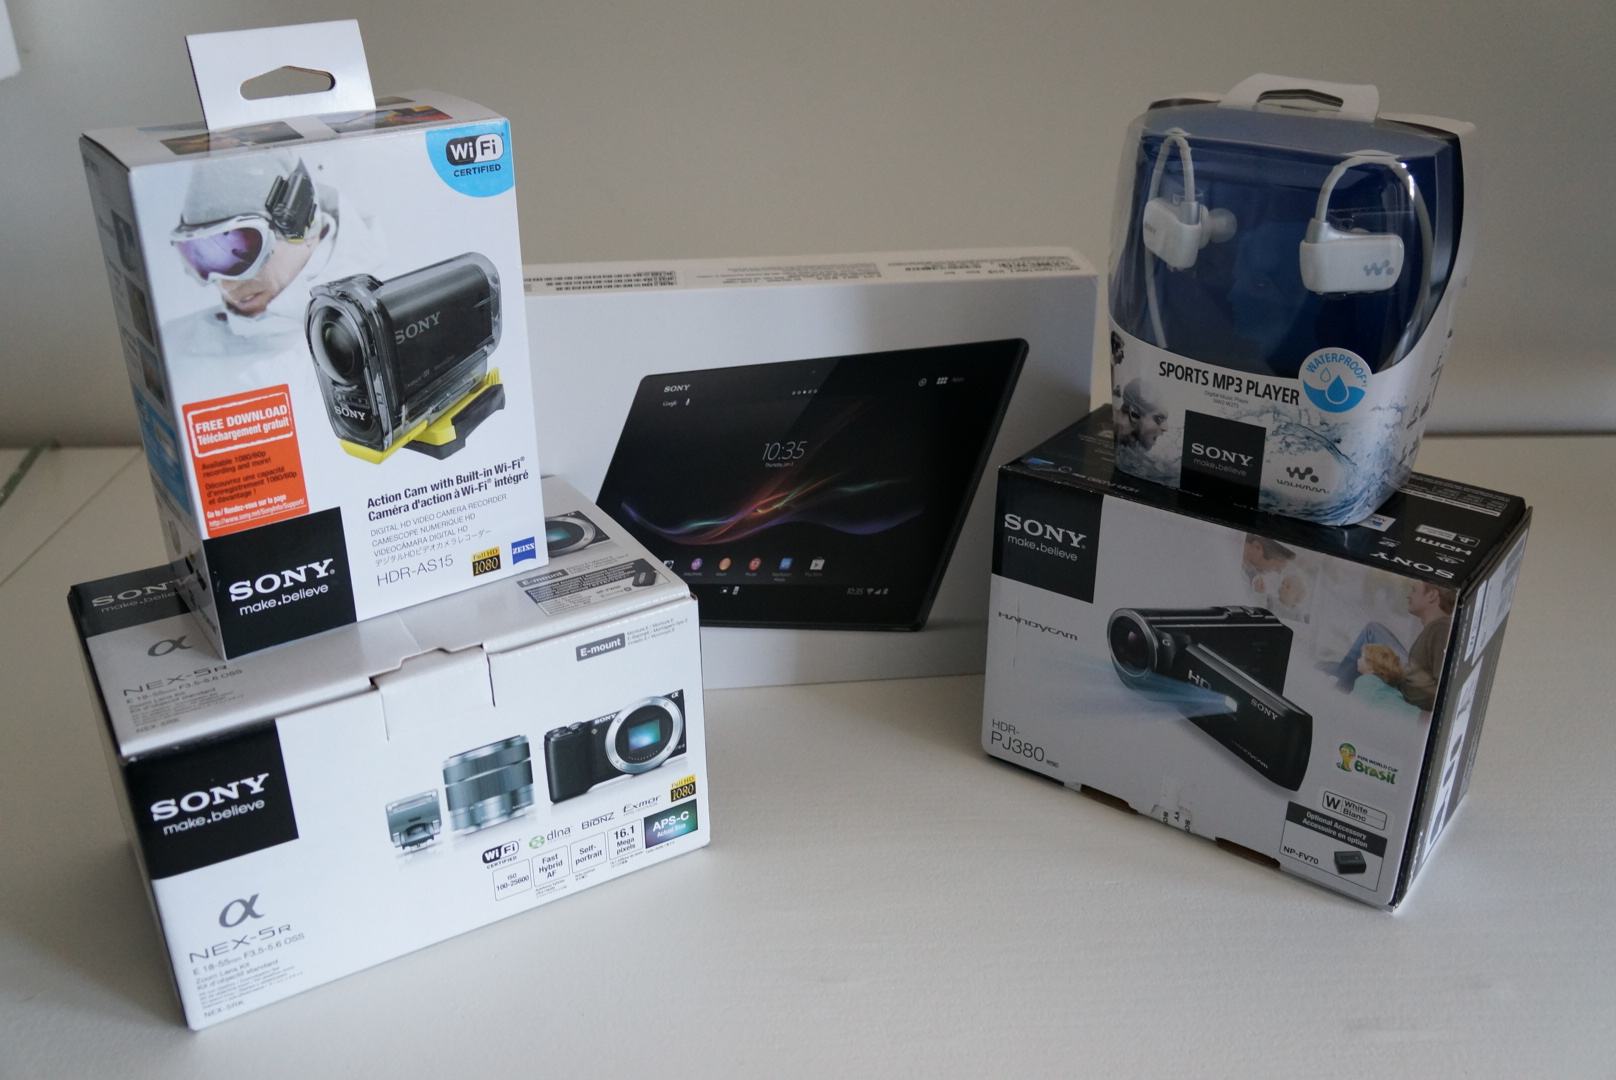 Some of the Sony gear I received